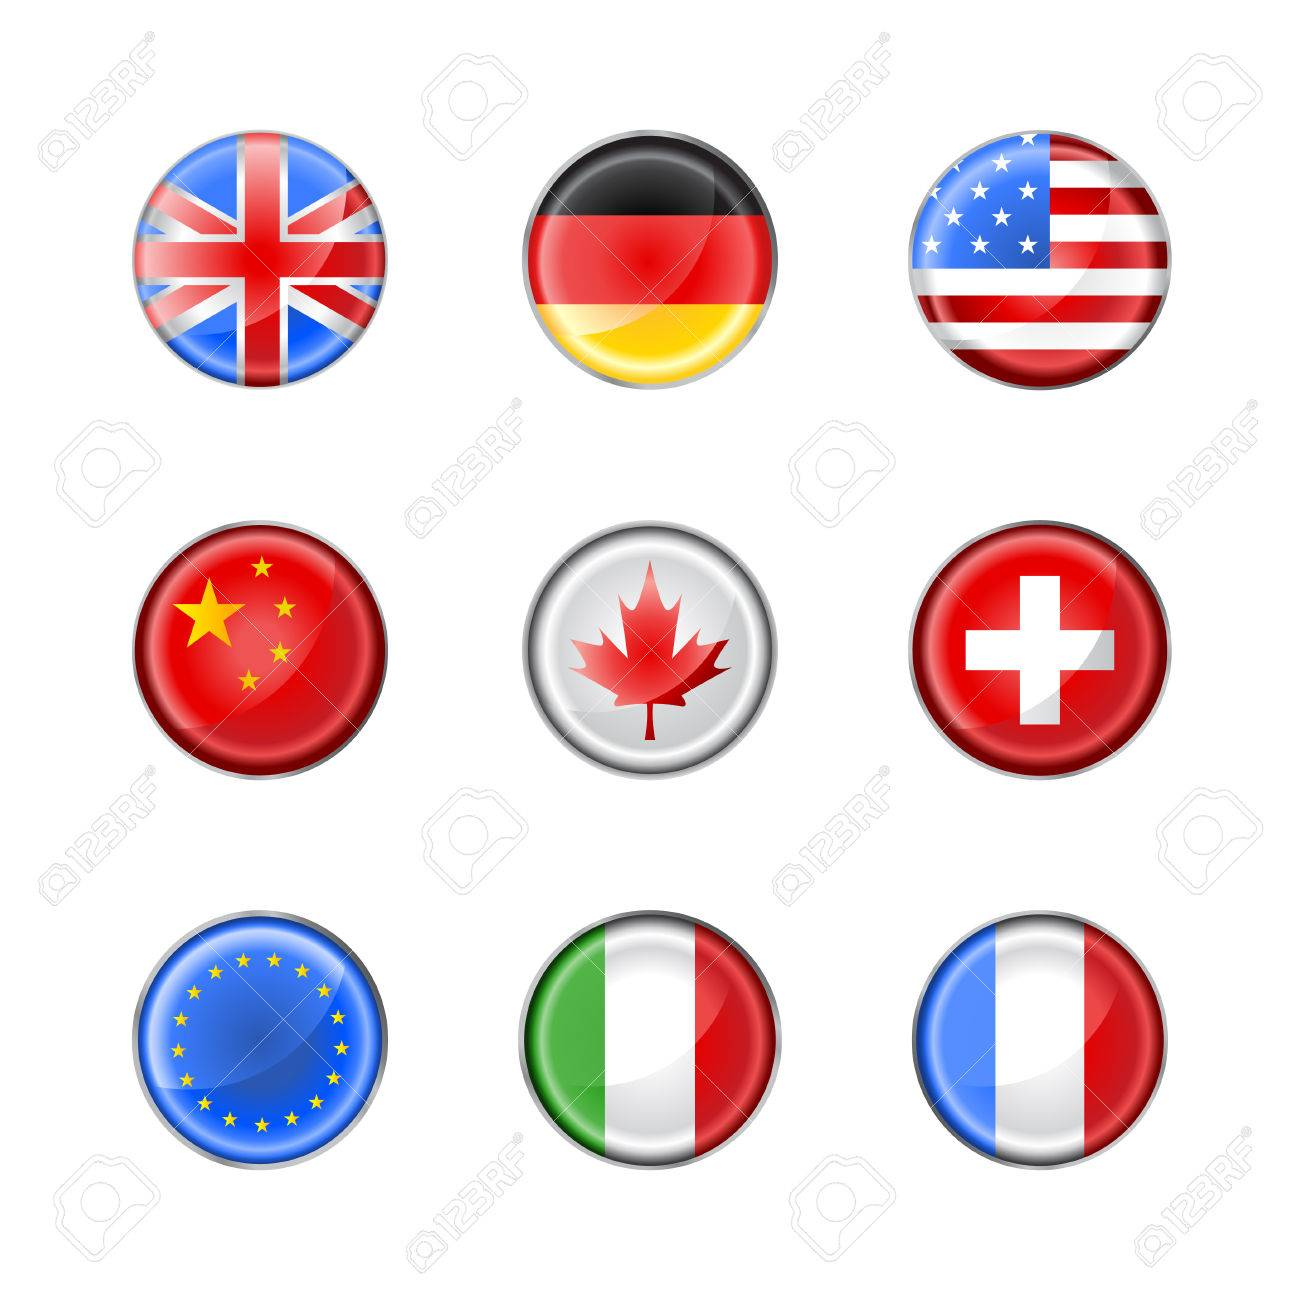 Vector illustration of round buttons set, decorated with the flags of different countries Stock Vector - 4966087